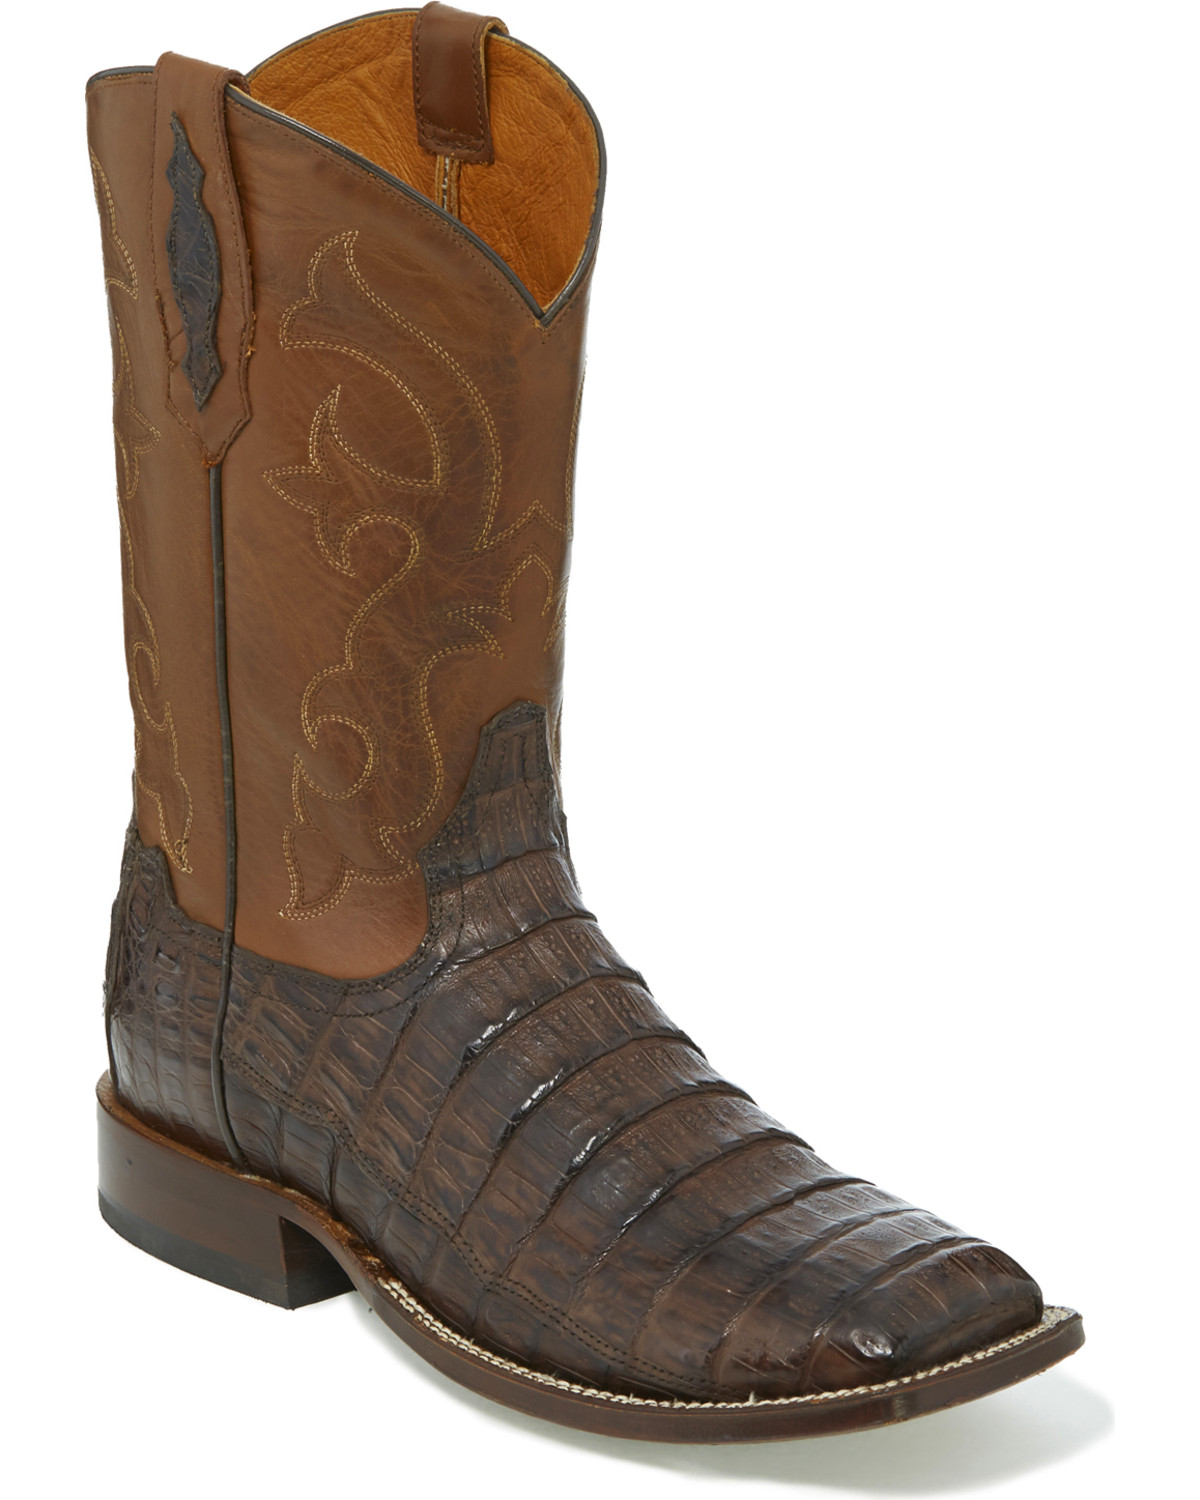 Tony Lama Men S Cafe Burnished Caiman Belly Cowboy Boots